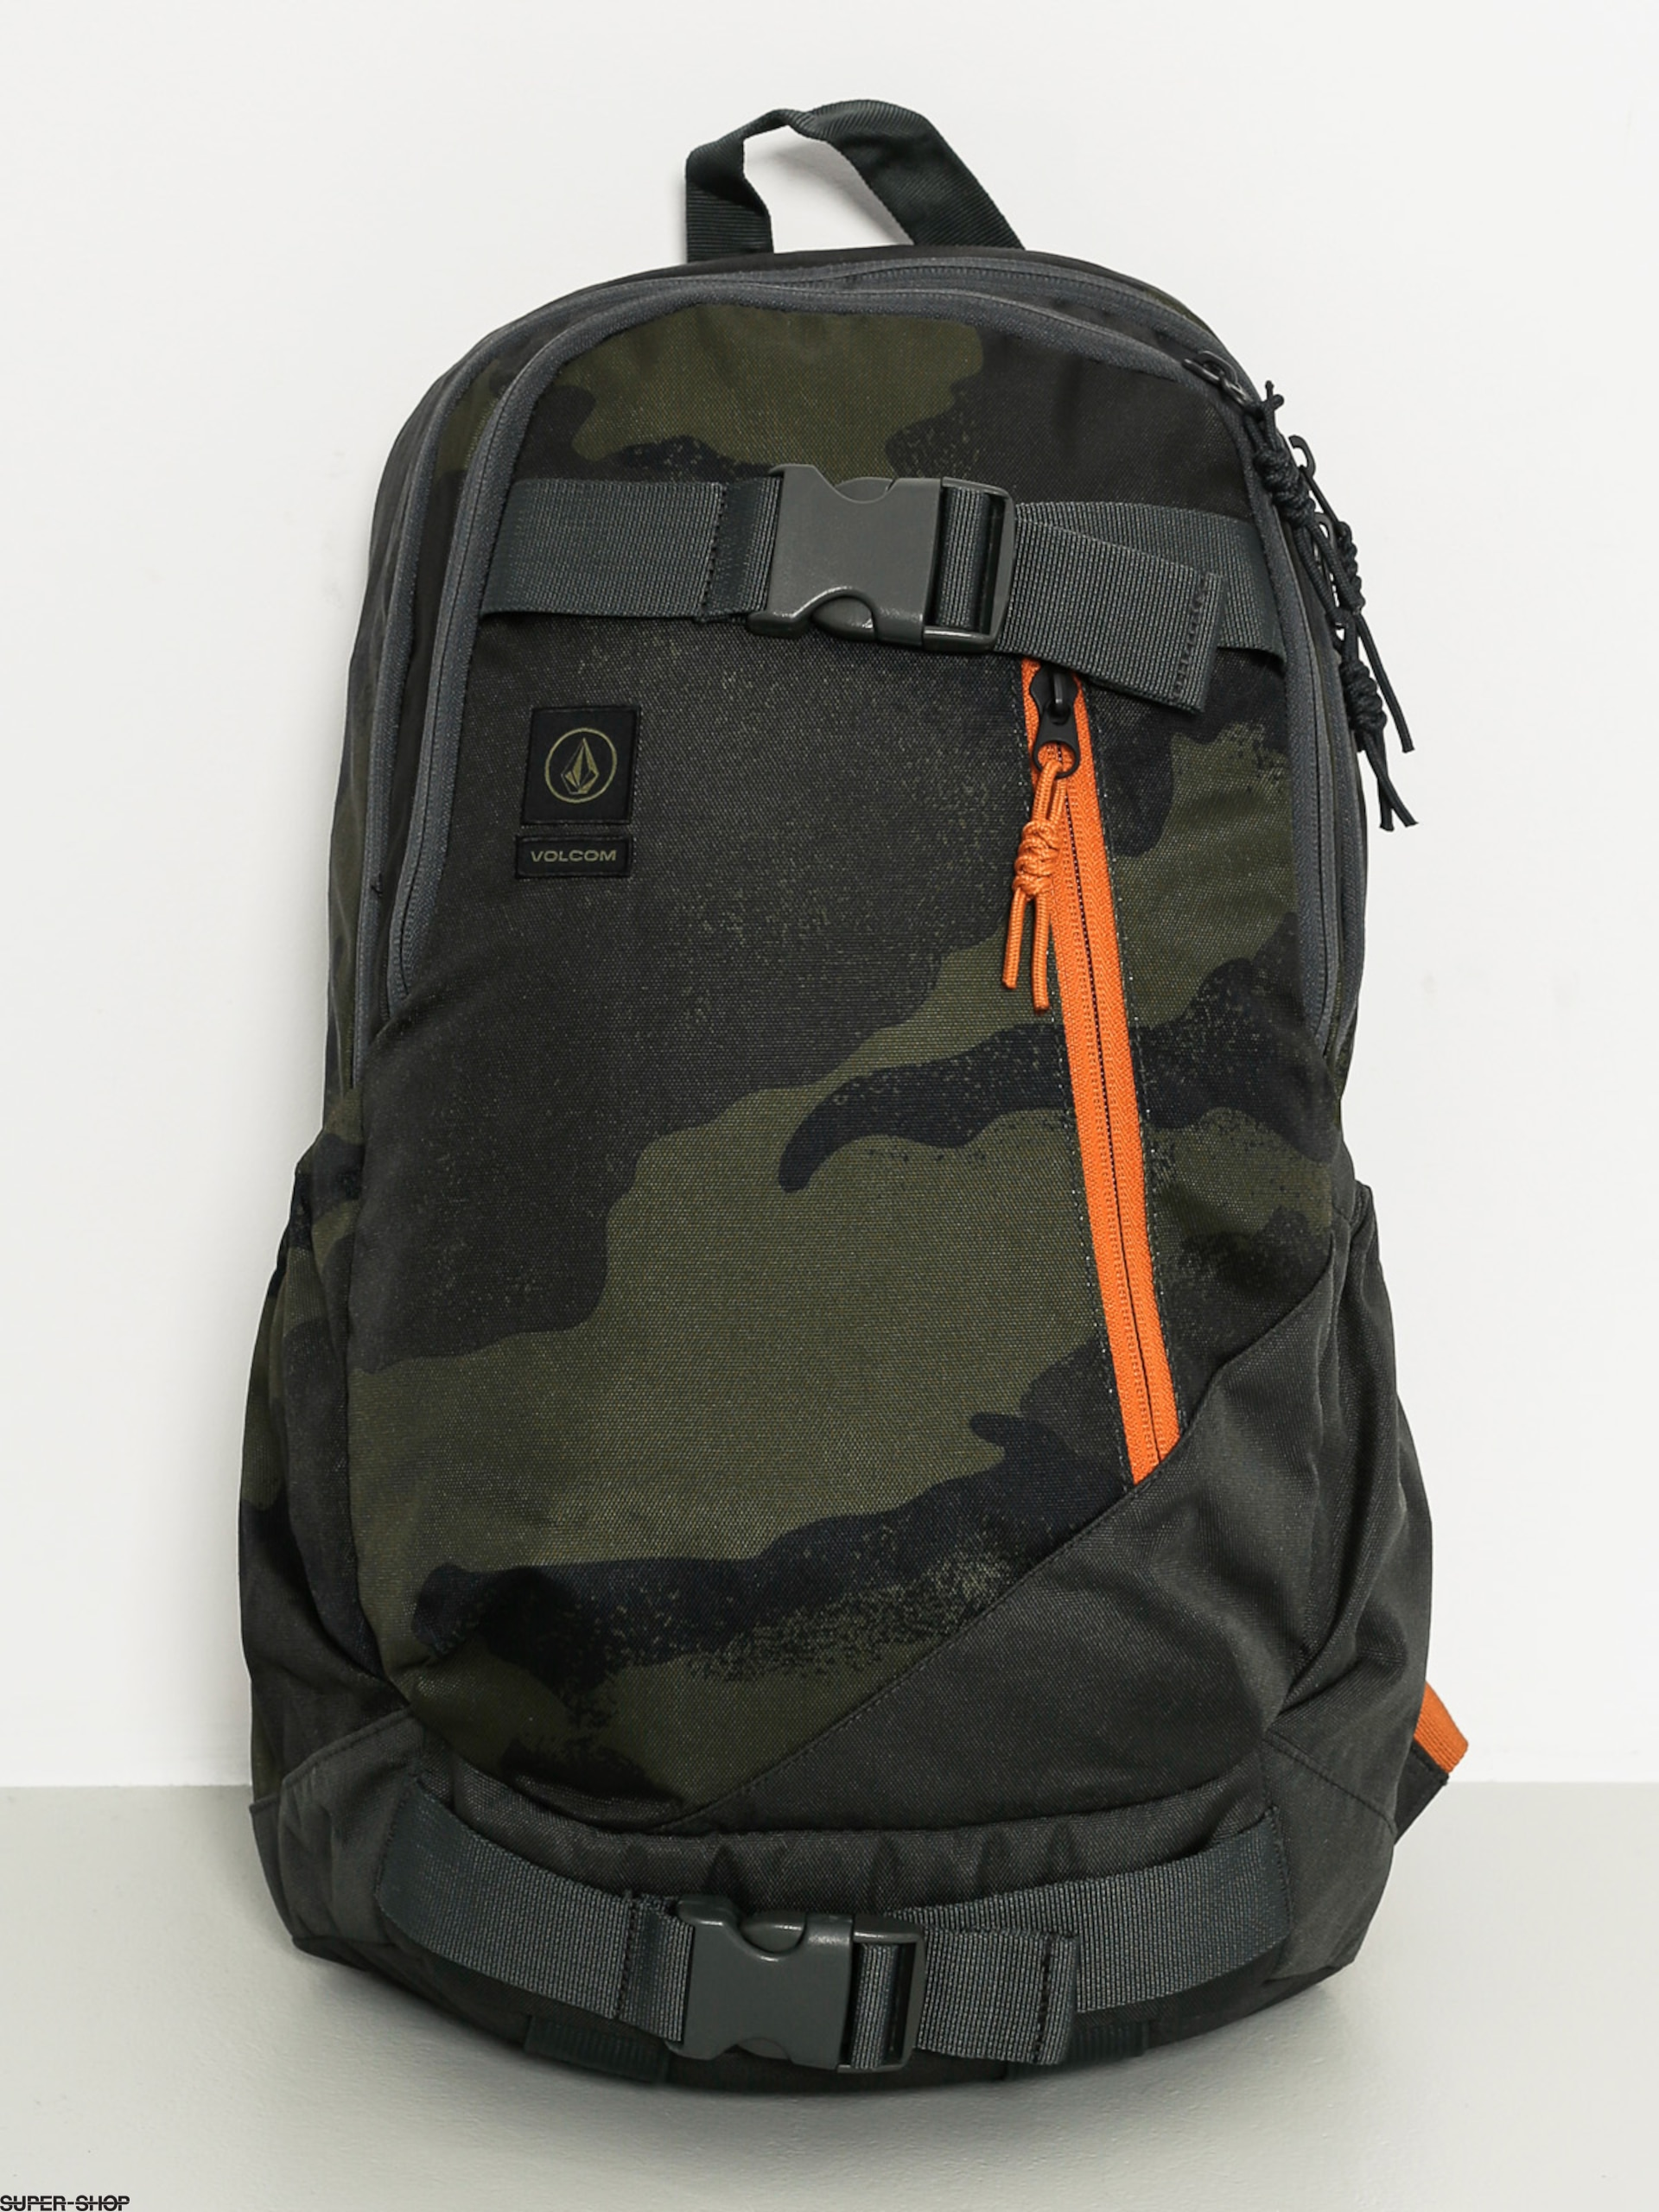 b9040eb162627 Volcom Backpack Substrate (vyg)